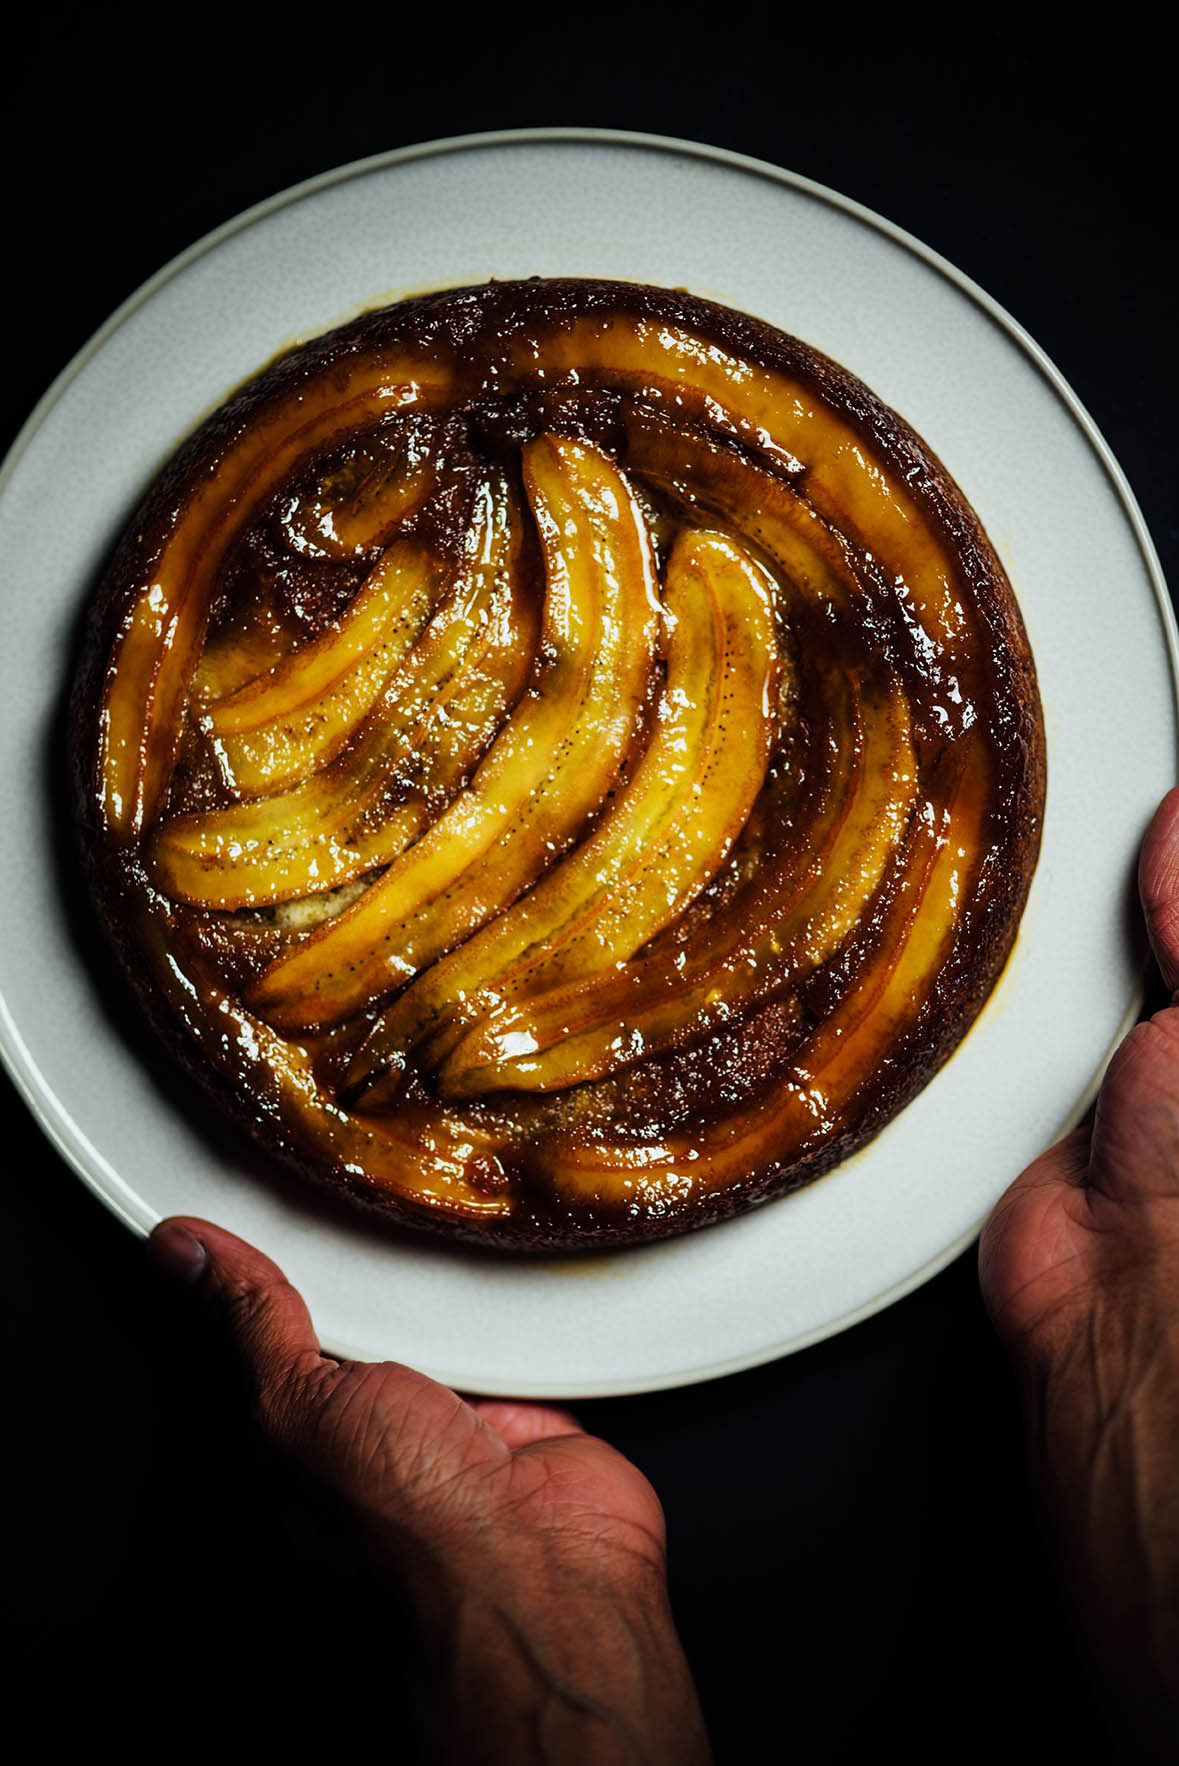 ghee and cardamom scented upside down banana cake | Nik Sharma